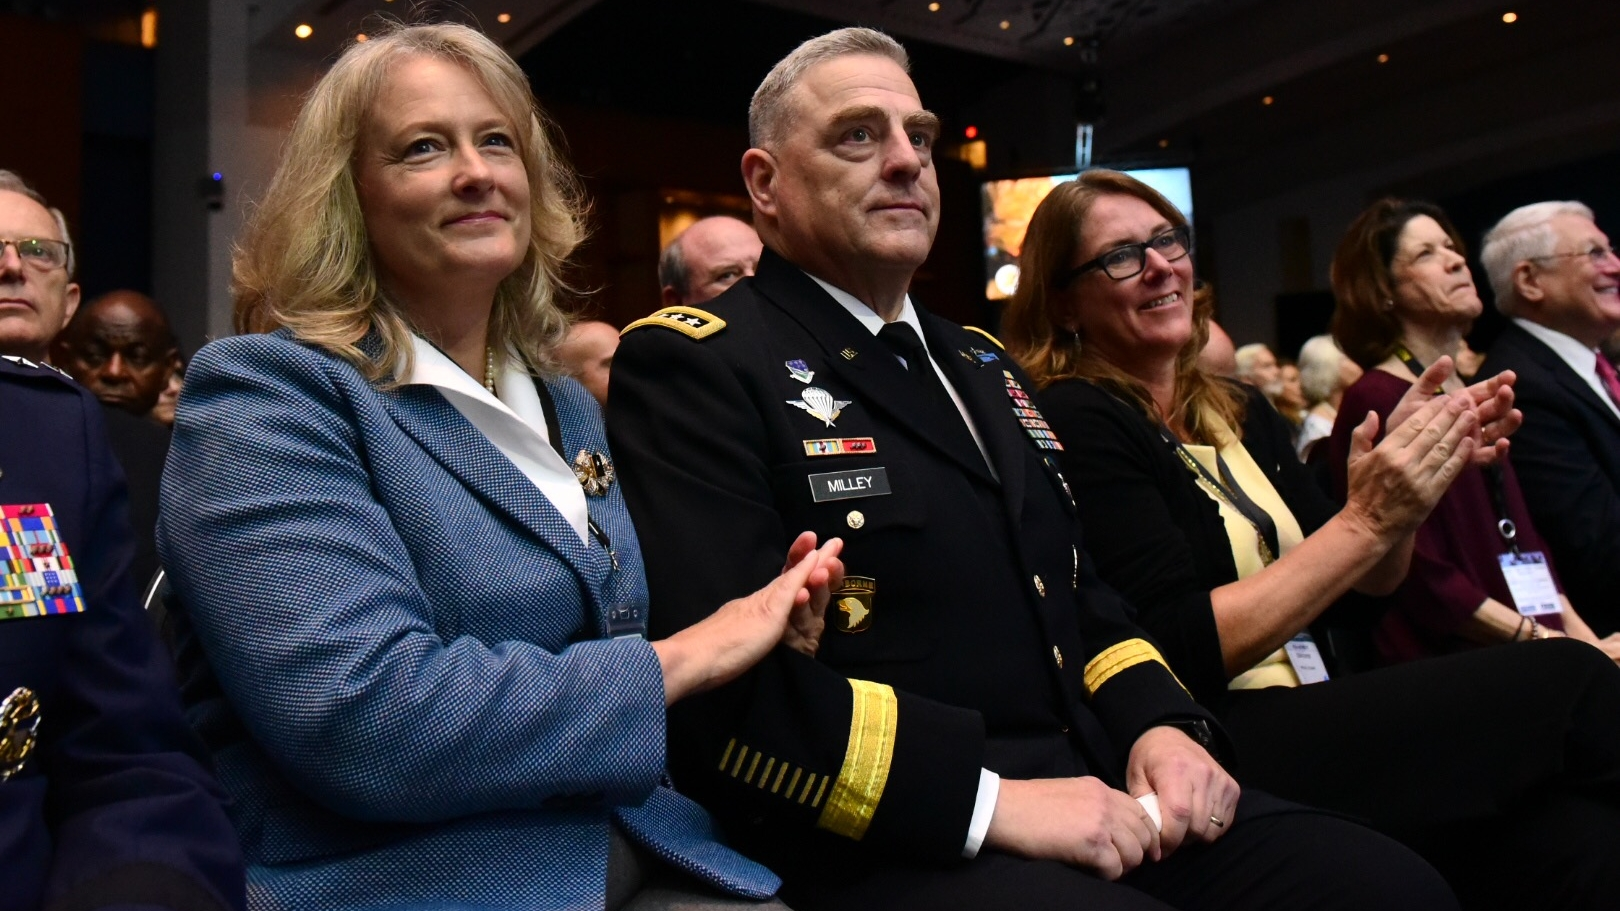 Army Chief of Staff Gen. Mark MIlley and his wife Hollyanne enjoy the opening ceremony for the 2018 annual meeting and exposition in Washington, DC. (Stephen Barrett/Special to Defense News & Army Times)